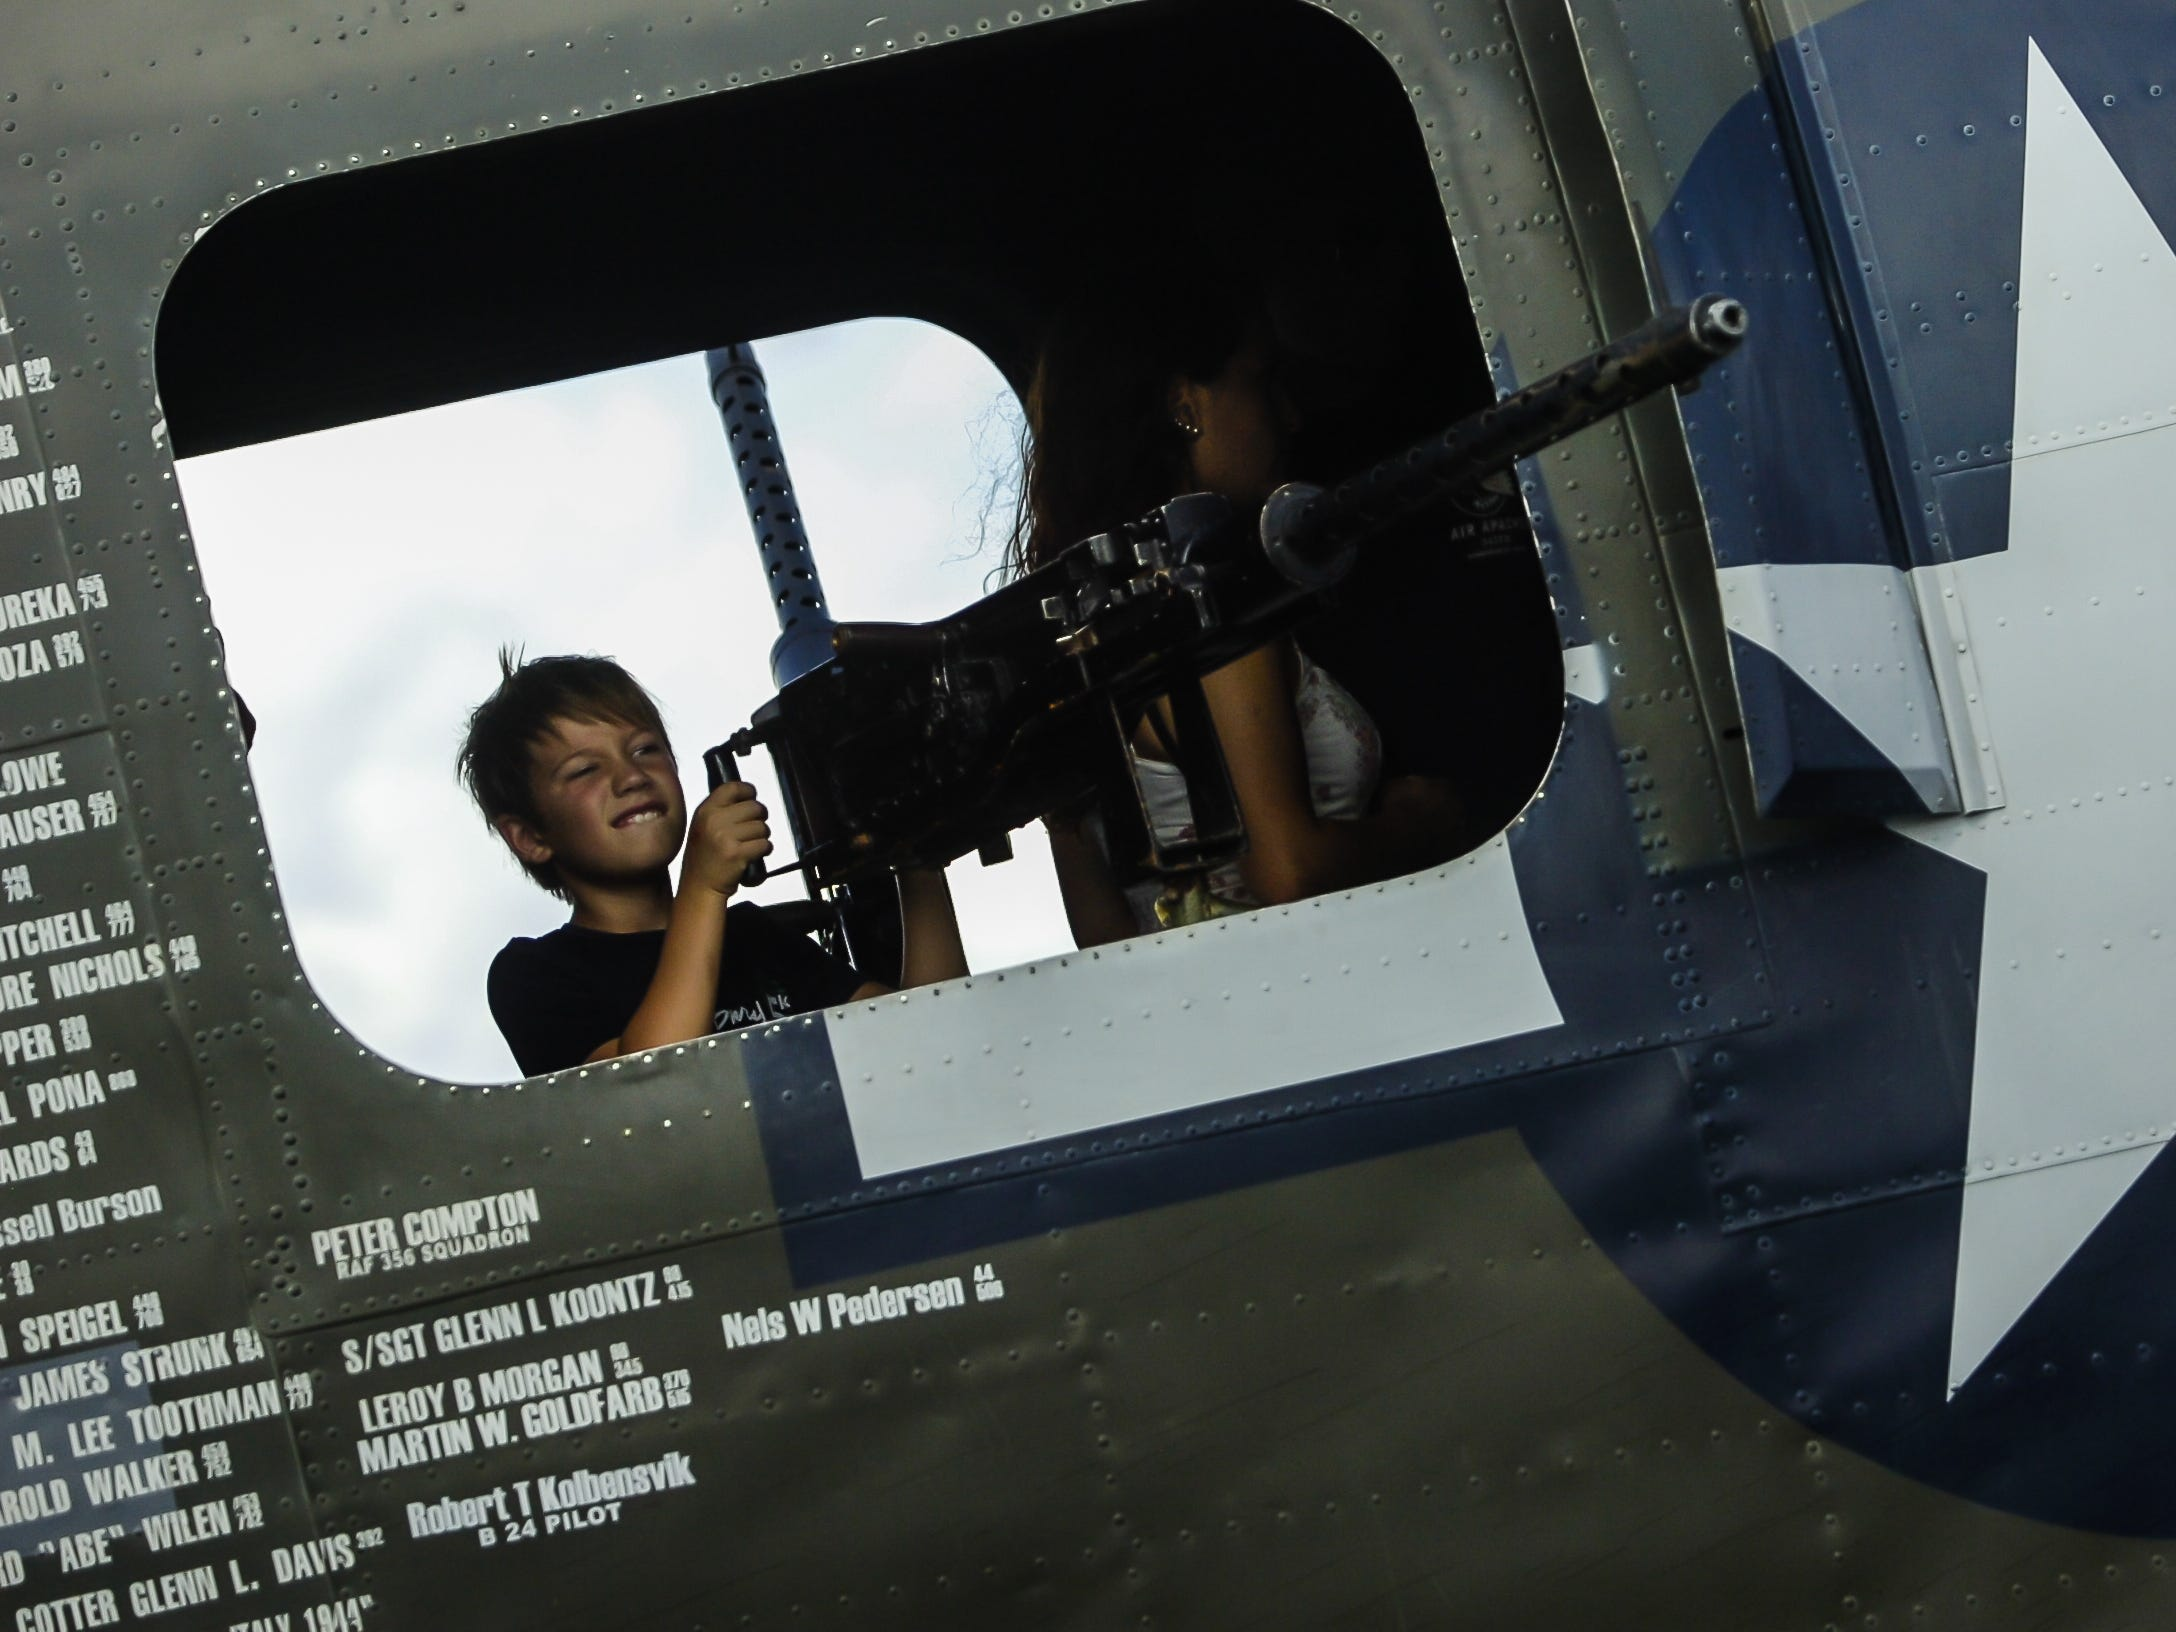 Colin Marcus-Maines of Shrewsbury, mans the machine gun in the B-24  WW II fighter plane at the Wings of Freedom Tour exhibit at Momouth Jet Center/Executive Airport in Wall on Aug. 22, 2018.